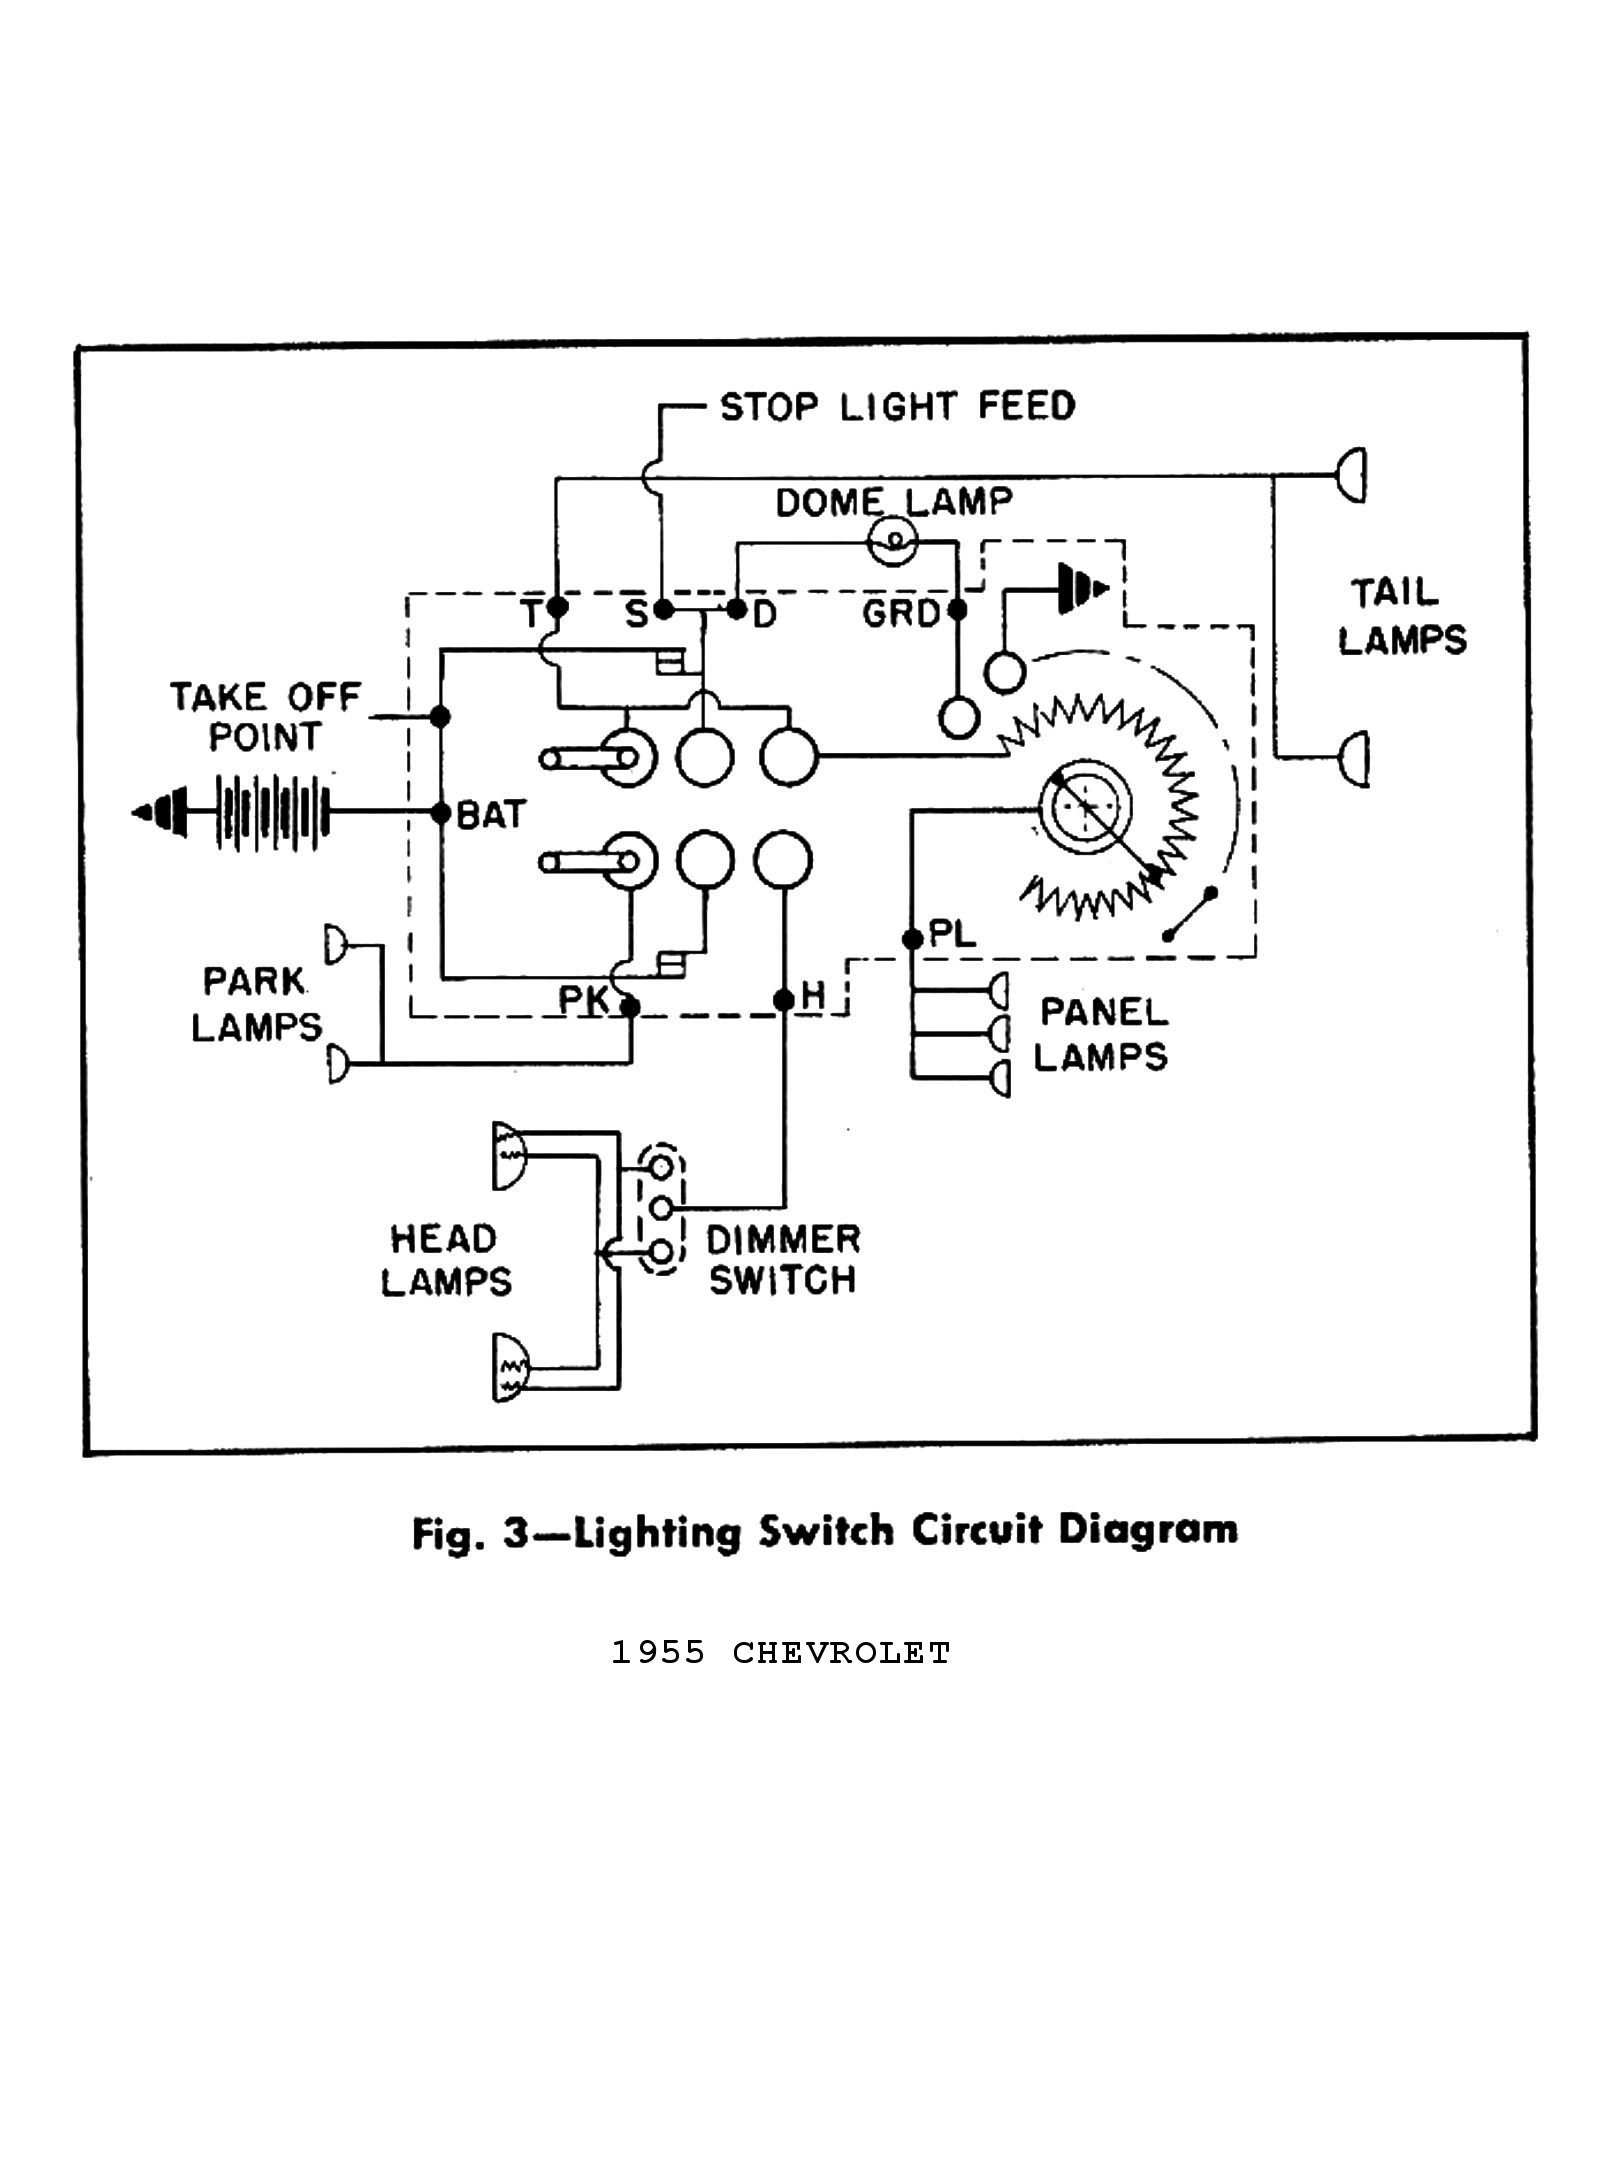 55ctsm1203 chevy wiring diagrams wiring diagram for a switch at fashall.co